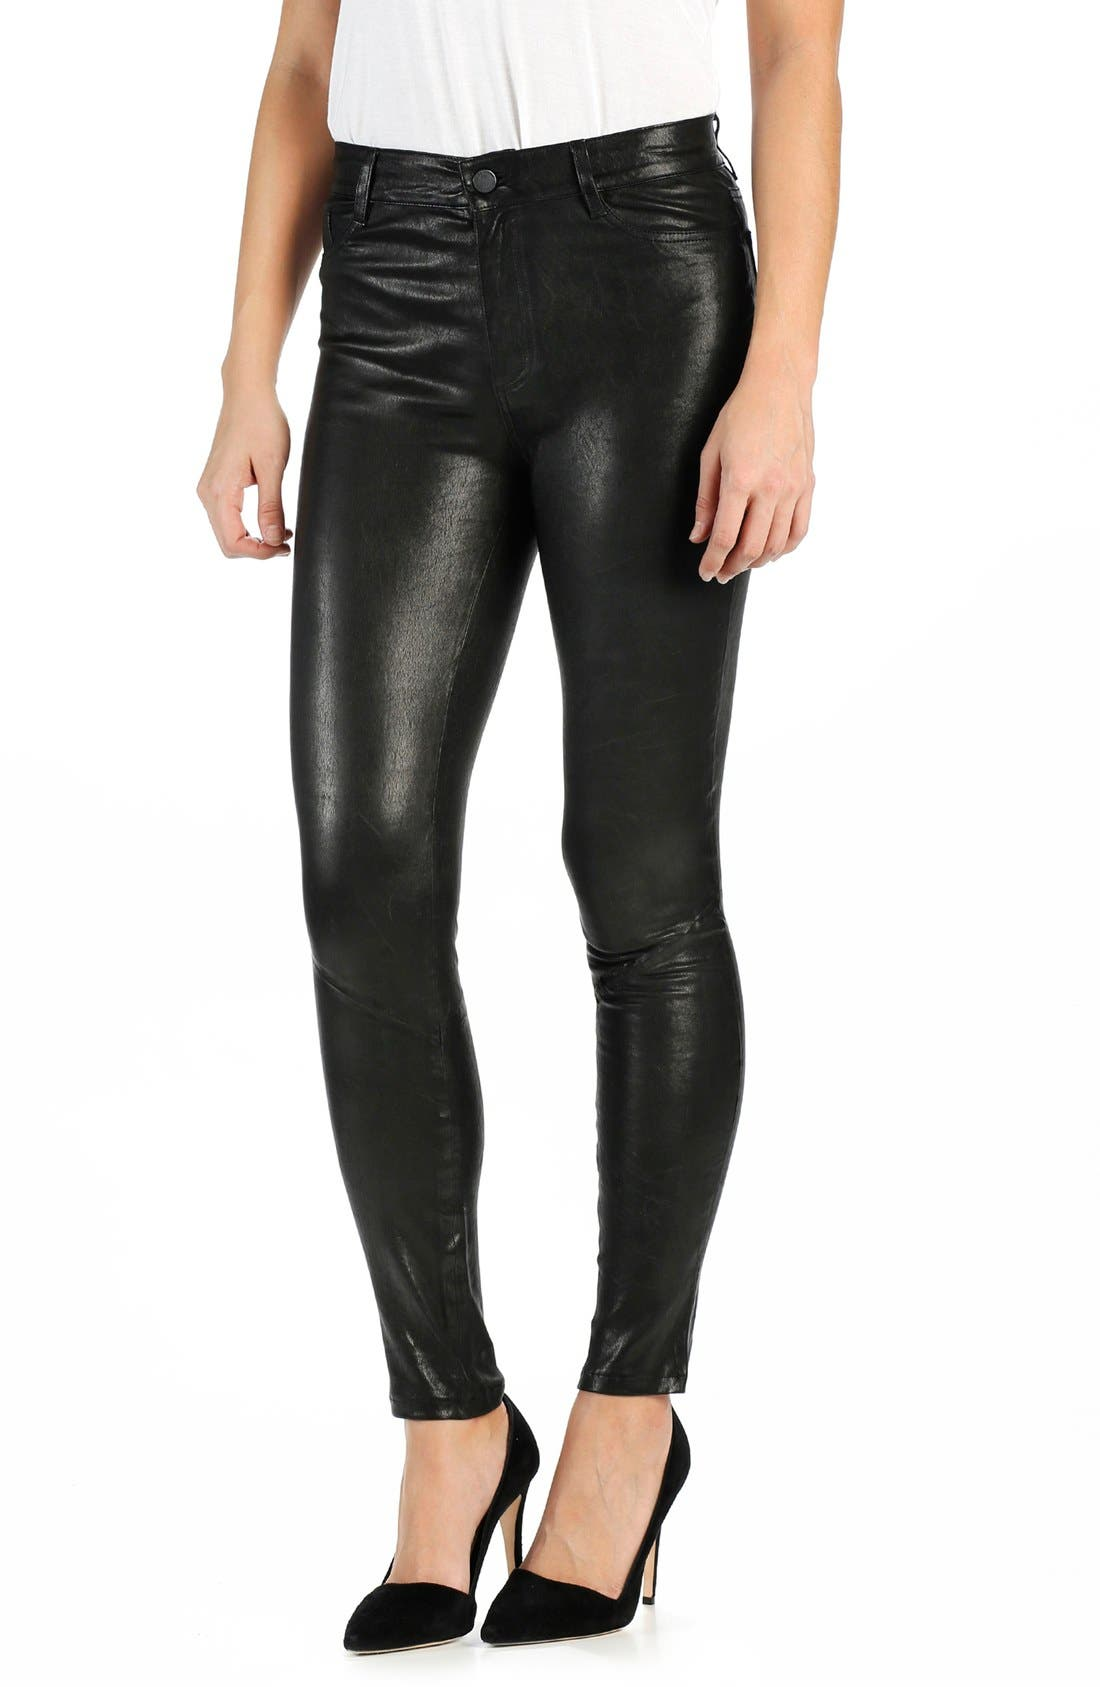 'Hoxton' High Rise Ultra Skinny Leather Pants,                             Main thumbnail 1, color,                             BLACK